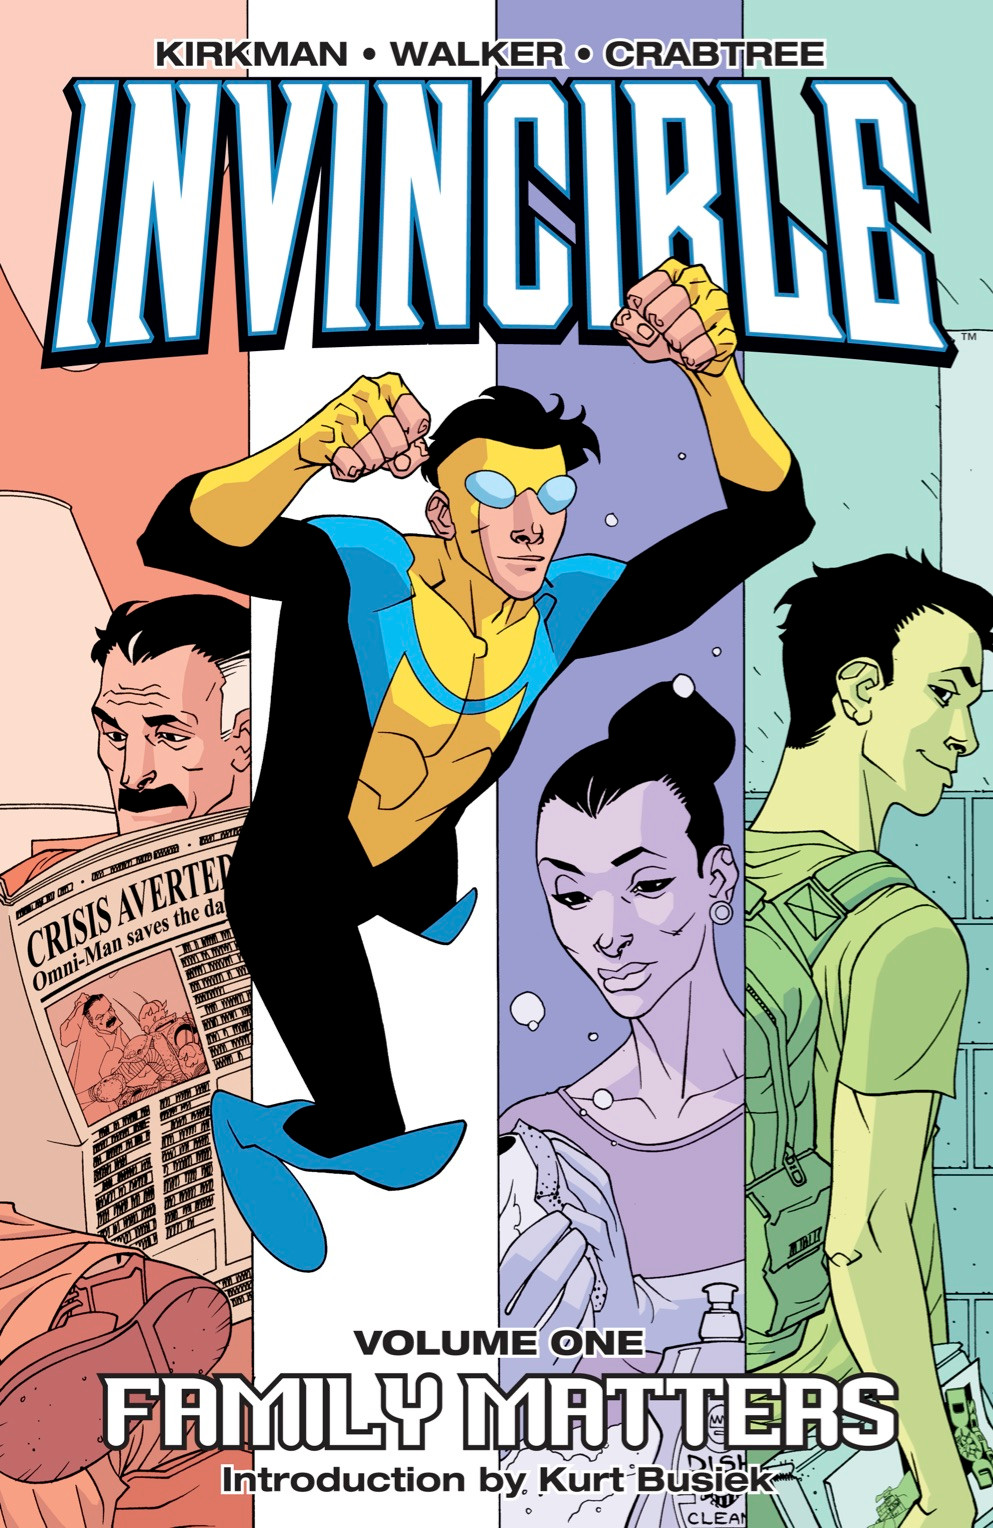 Invincible, Vol. 1 (tpb), cover, Image Comics, Kirkman/Walker